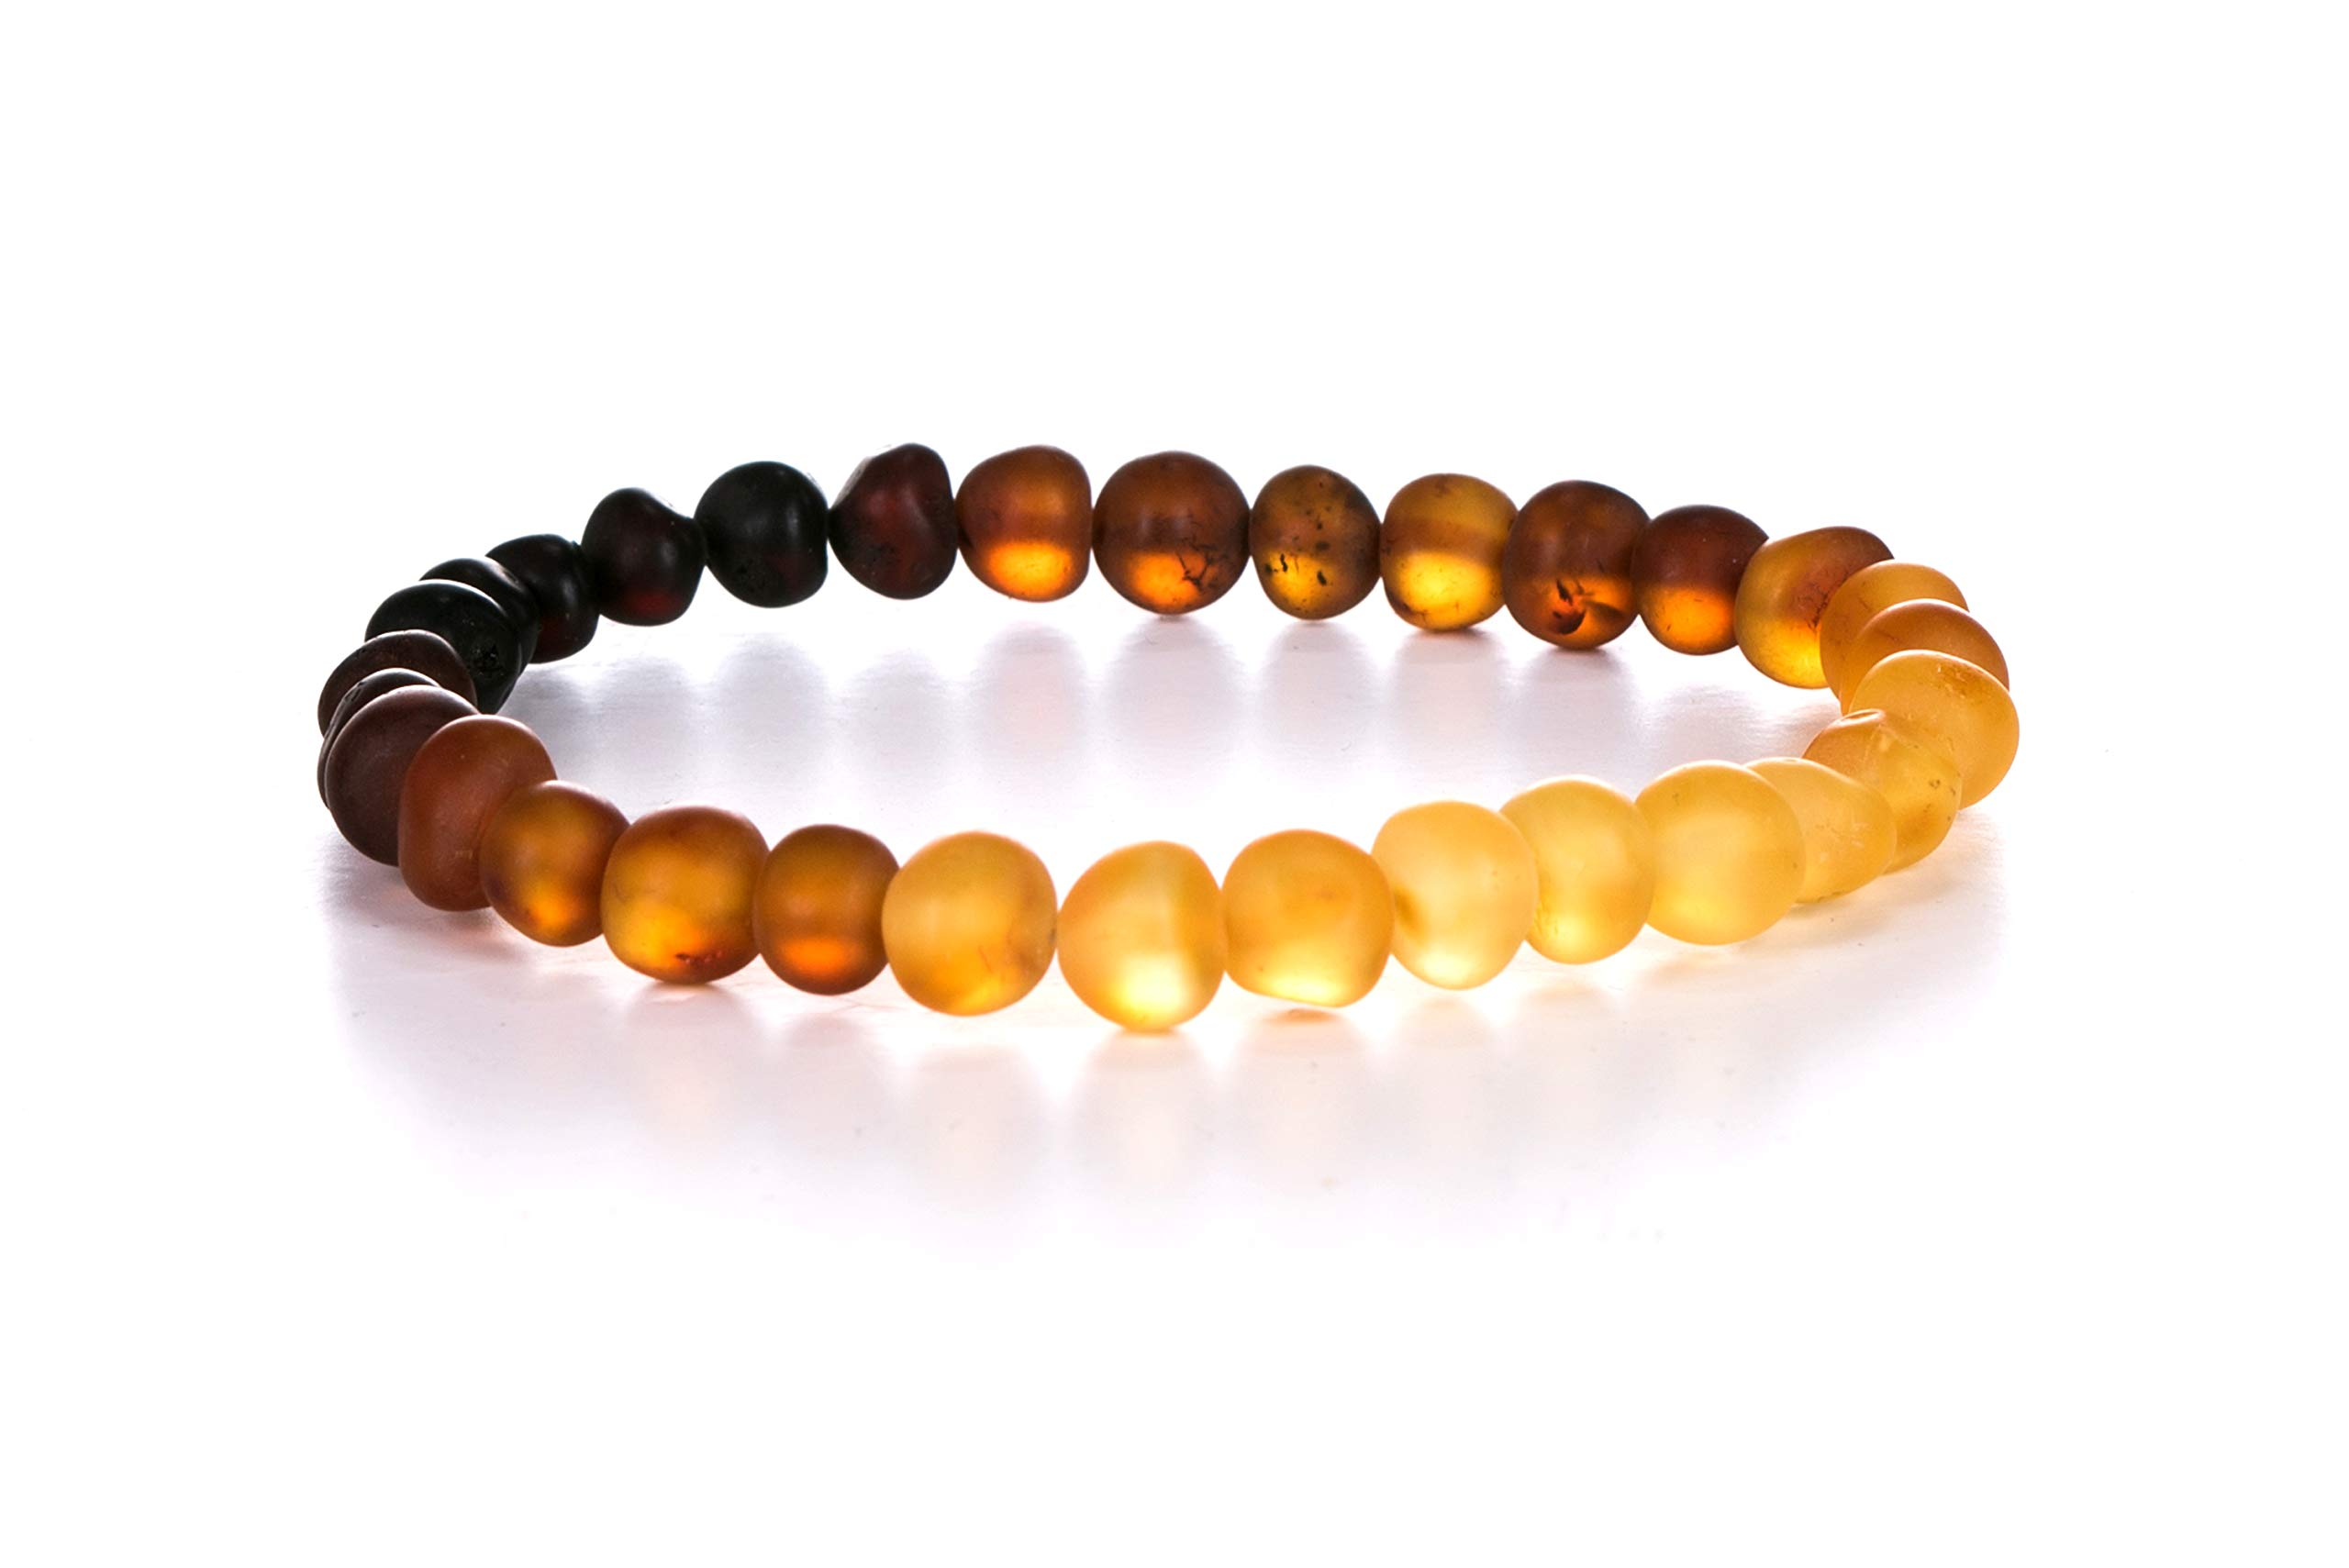 AMBERAGE Natural Baltic Amber Bracelet for Adults (Women/Men) - Hand Made from Raw-Unpolished/Certified Baltic Amber Beads(6 Colors) (7, Raw-Unpolished Rainbow) by AMBERAGE